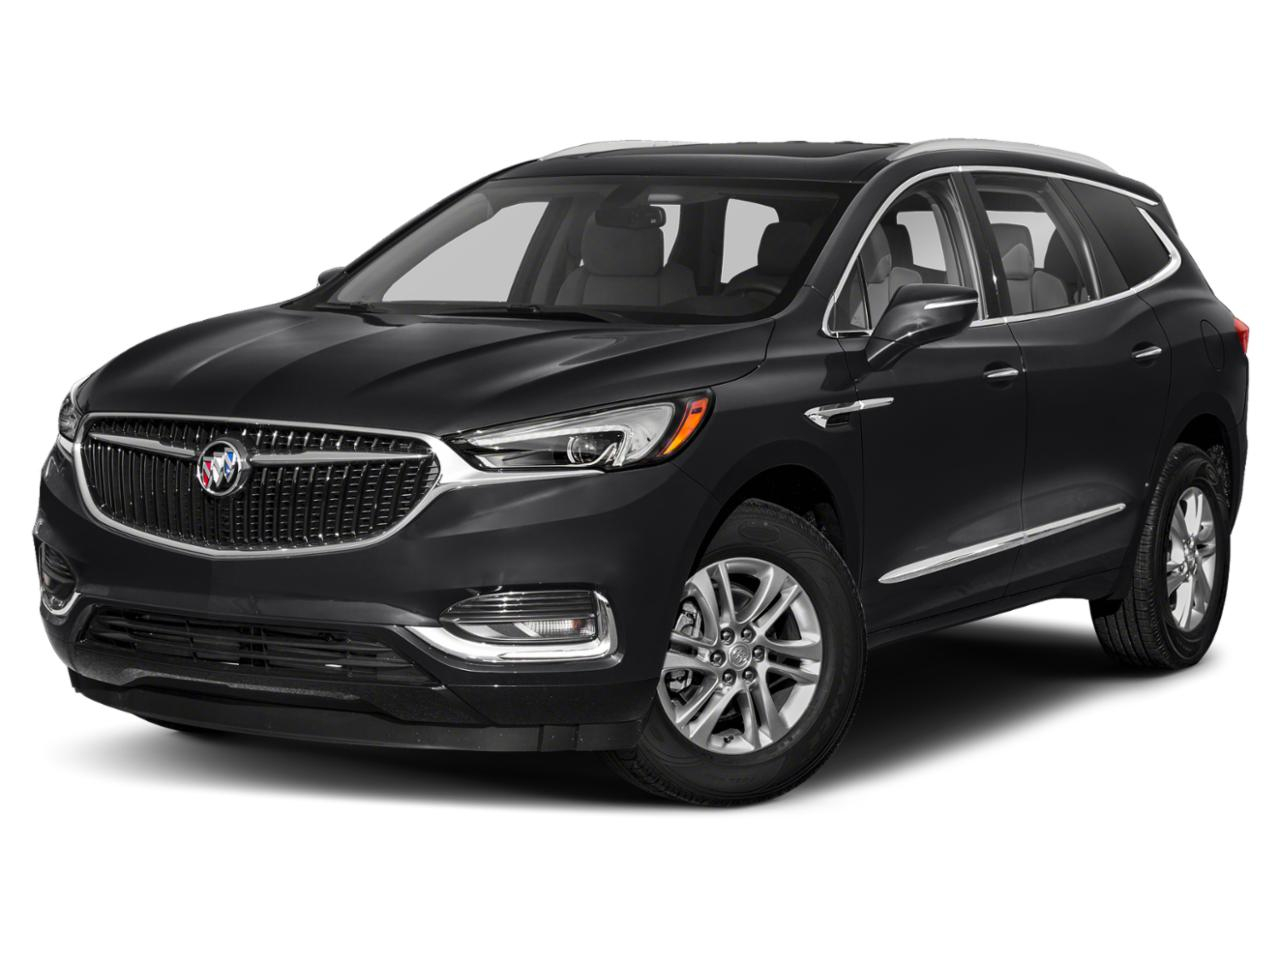 2020 Buick Enclave Avenir Awd In Norman, Ok | Stk# |Ferguson 2021 Buick Enclave Manual, Maintenance Schedule, Mileage